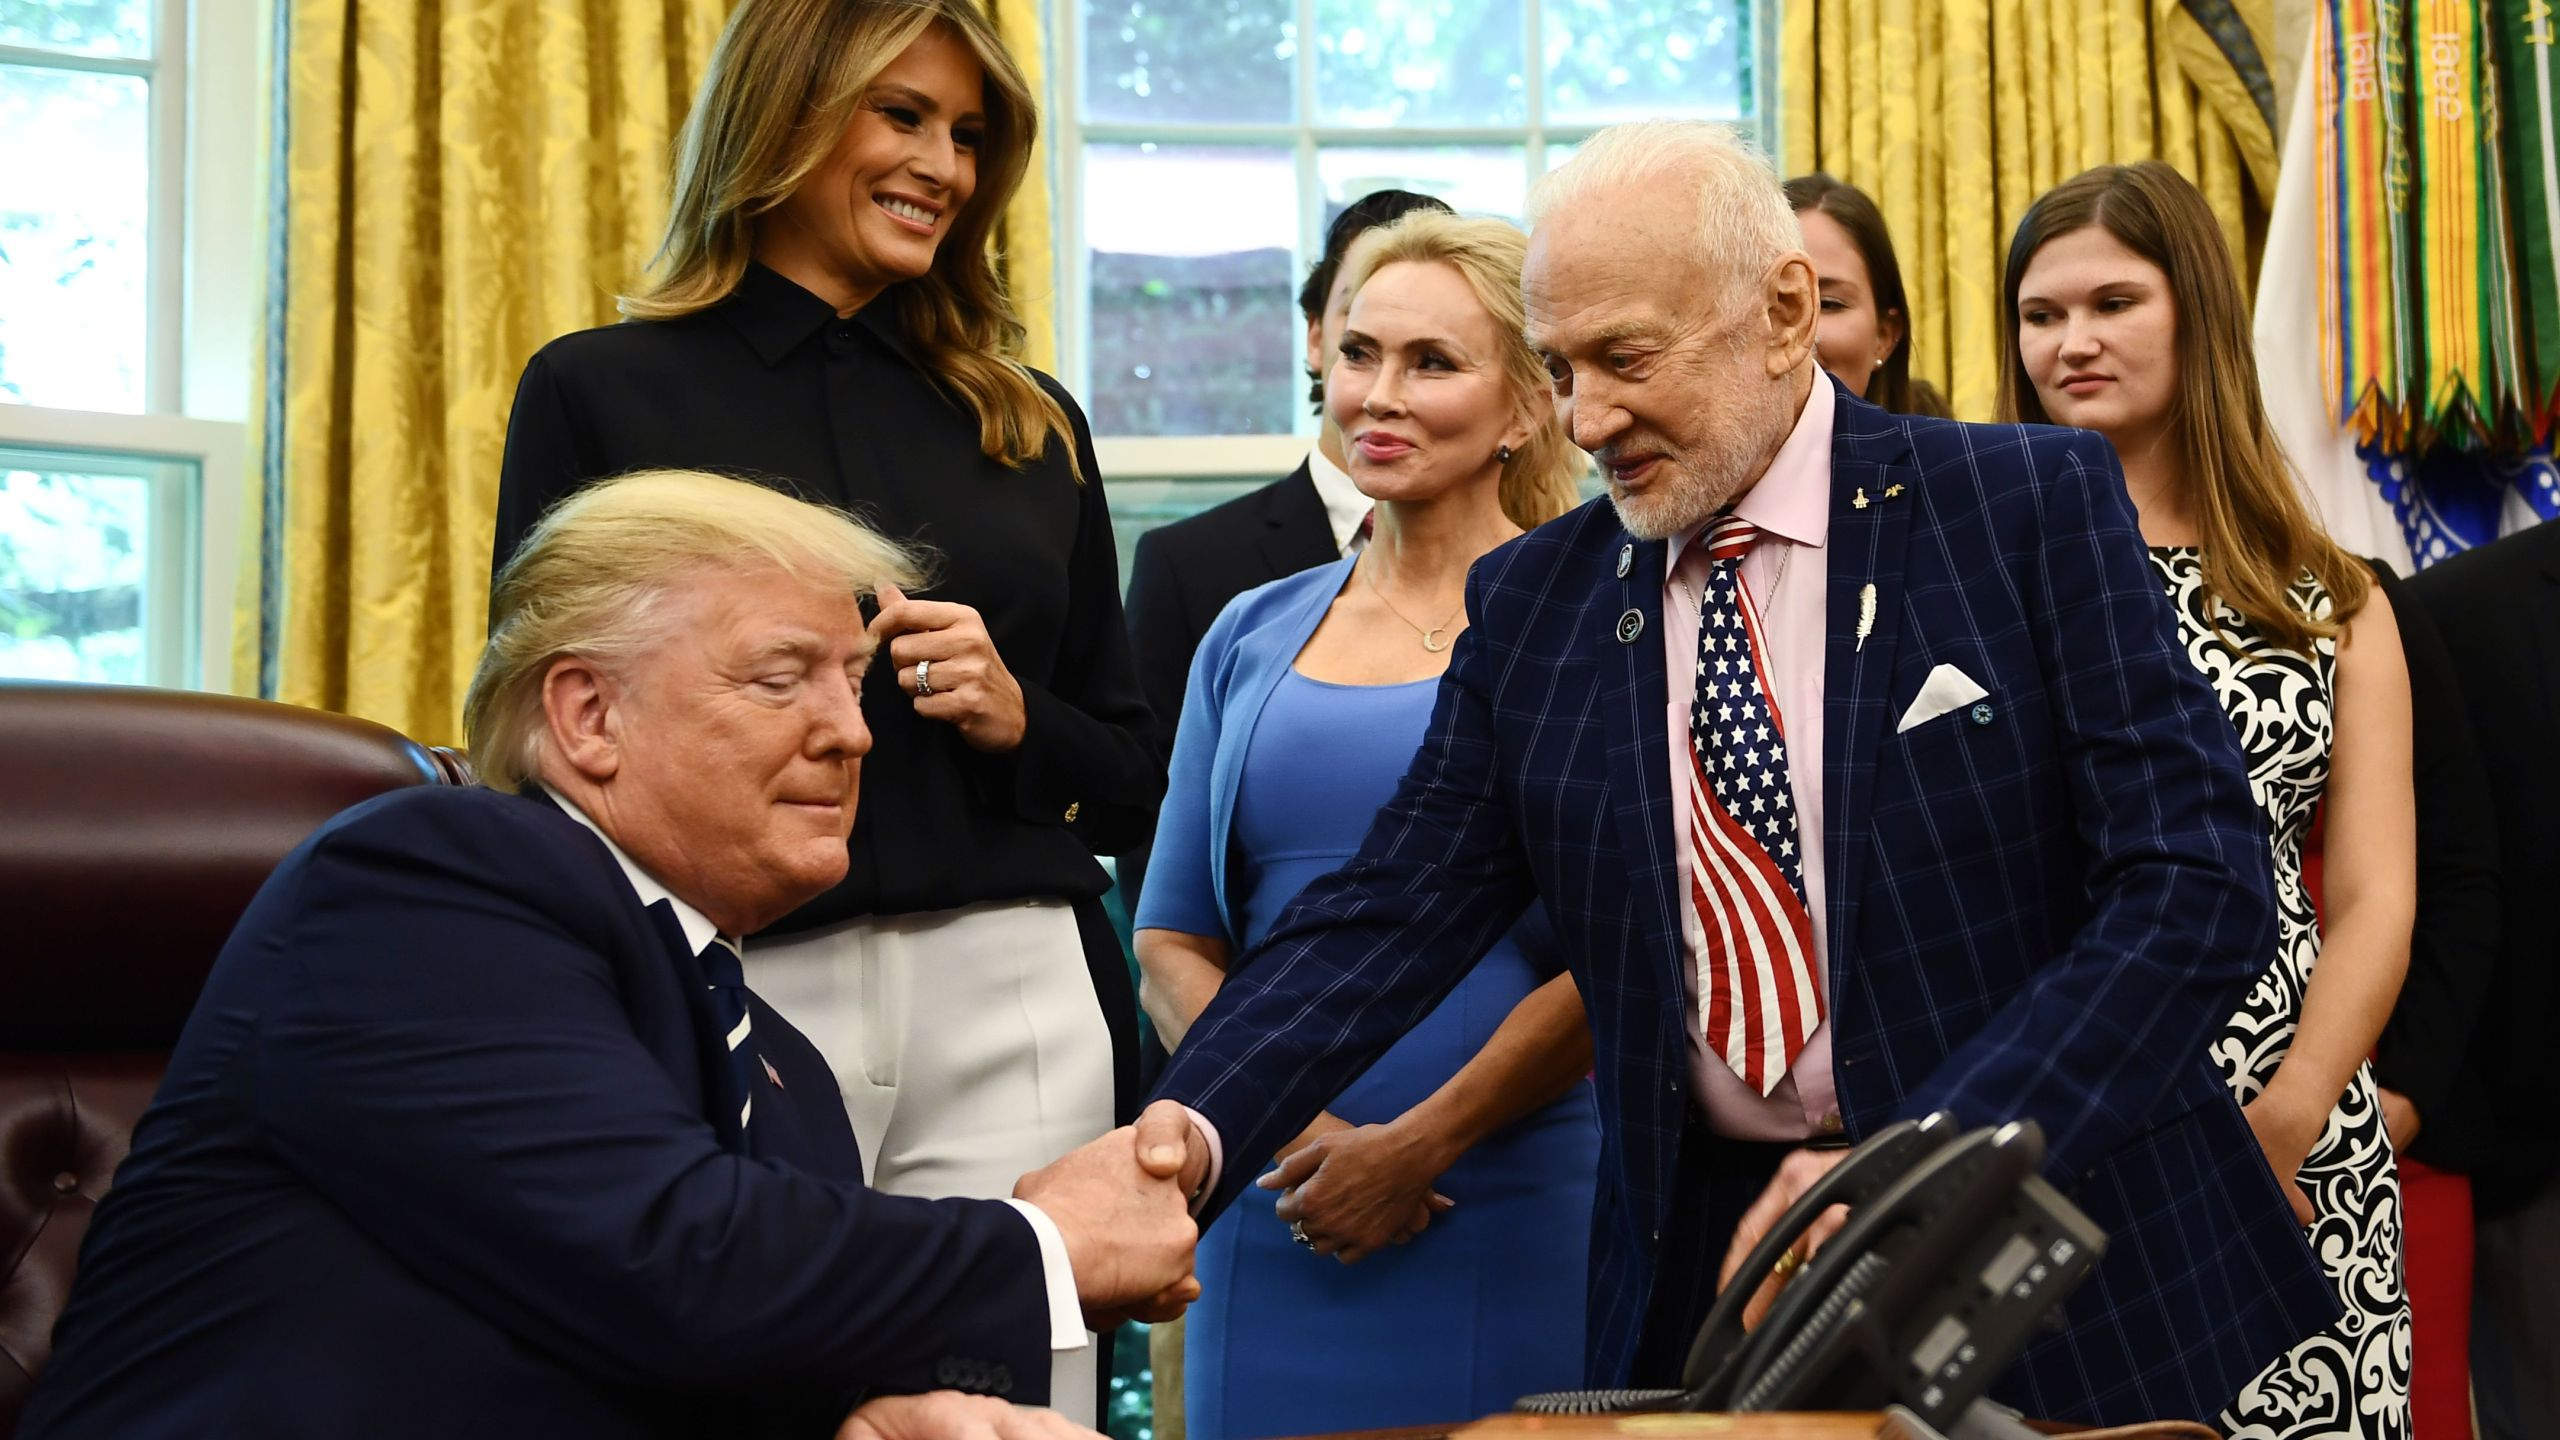 U.S. President Donald Trump shakes hands with Apollo 11 crew member Buzz Aldrin on July 19, 2019, at the White House in Washington, D.C., during a ceremony commemorating the 50th anniversary of the Moon landing. (Credit: Brendan Smialowski / AFP/ Getty Images)